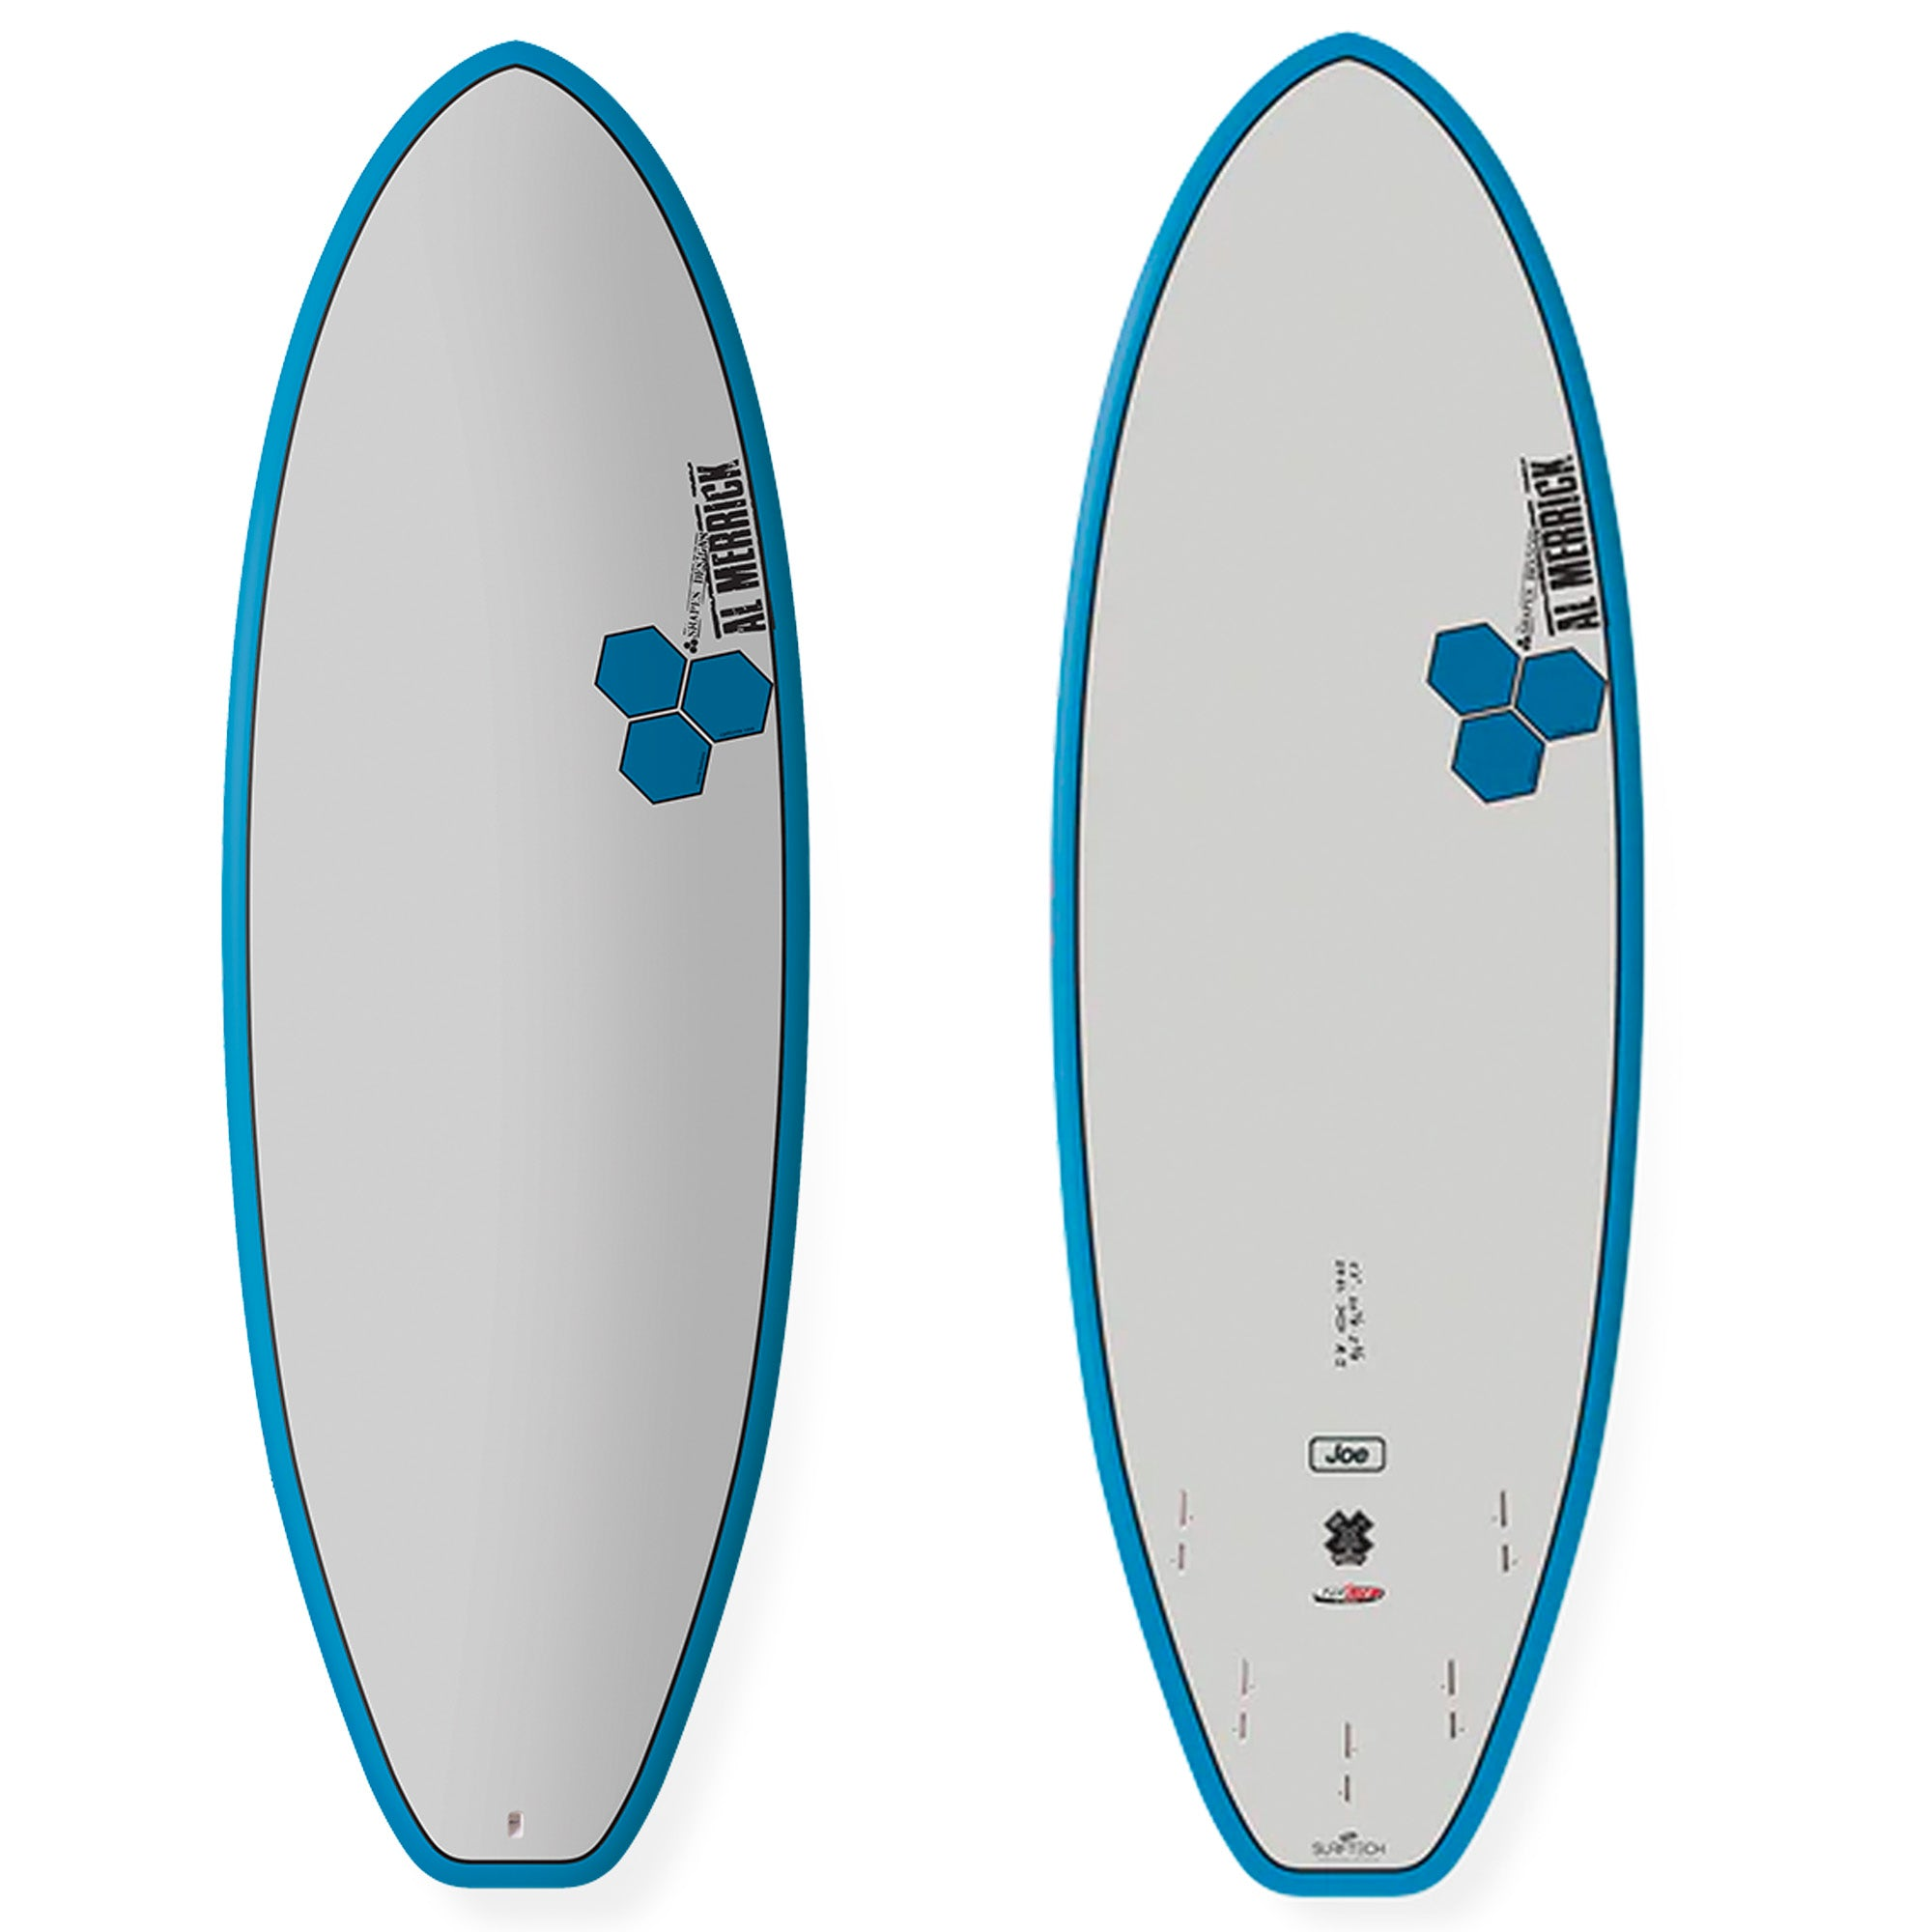 Channel Islands Average Joe Tuflite V-Tech Surfboard - FCS II